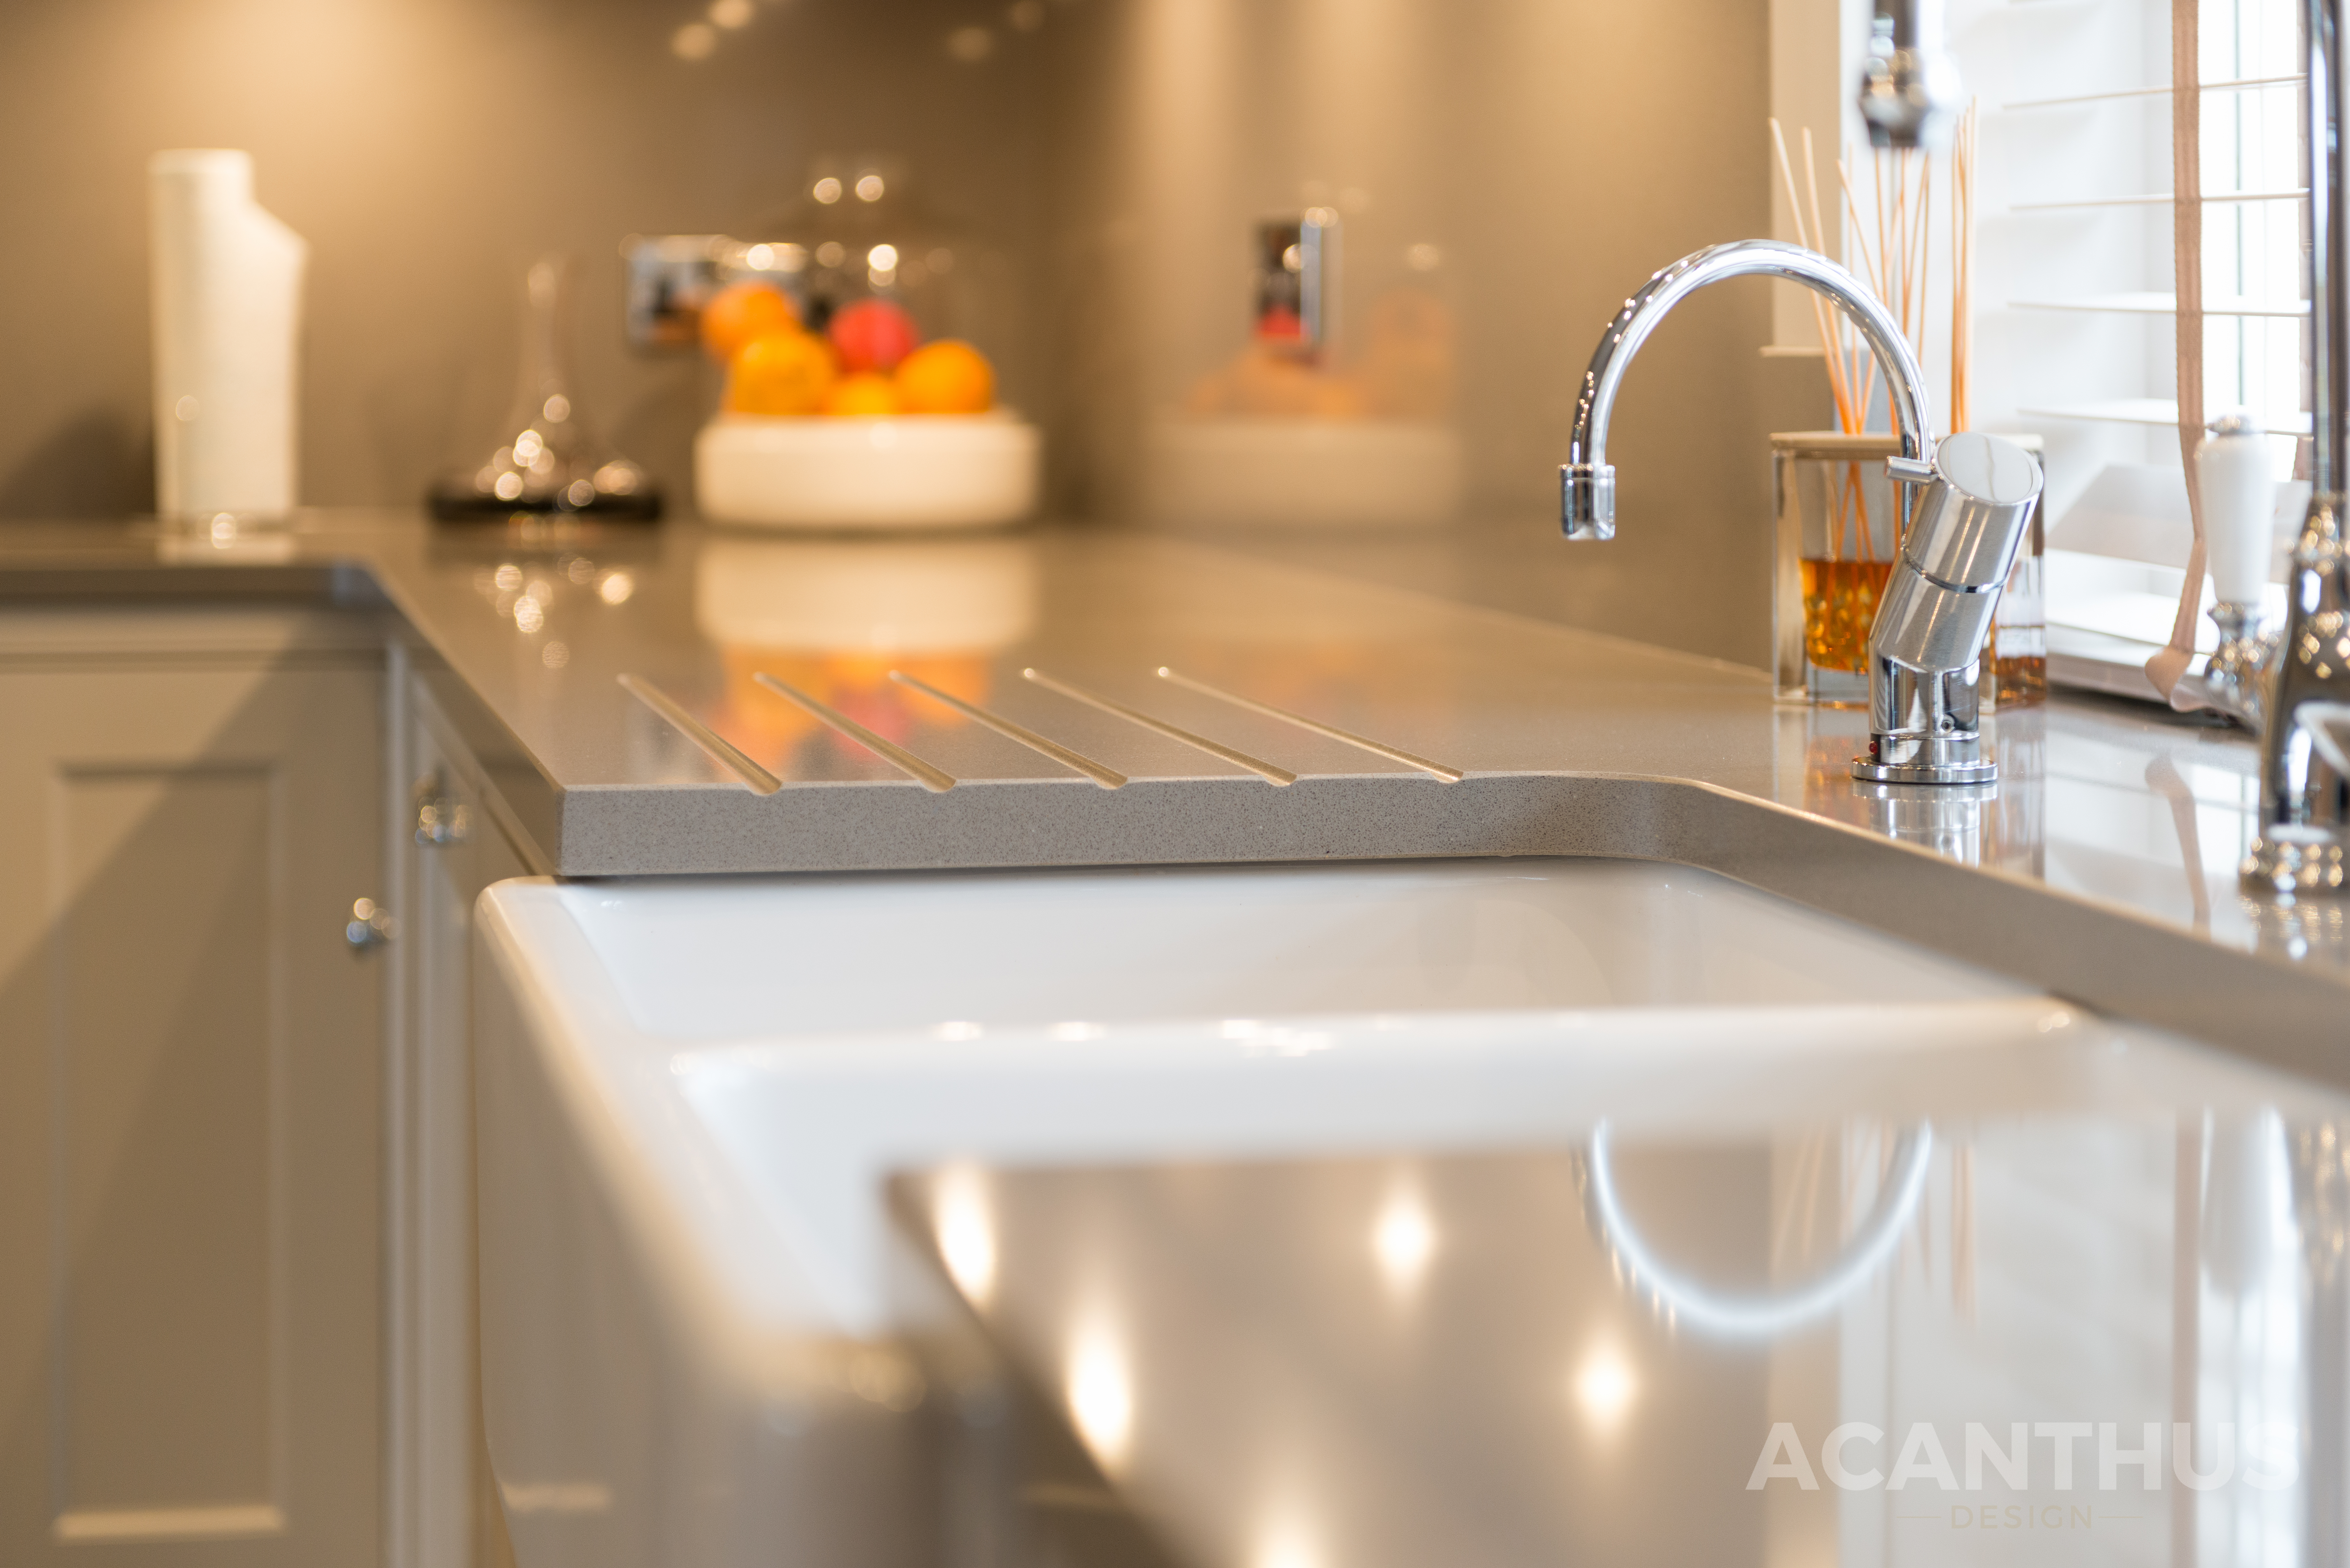 Acanthus Design English Classic Kitchen Featuring Silestone Gris Expo Kitchen Worktops & Quooker Tap